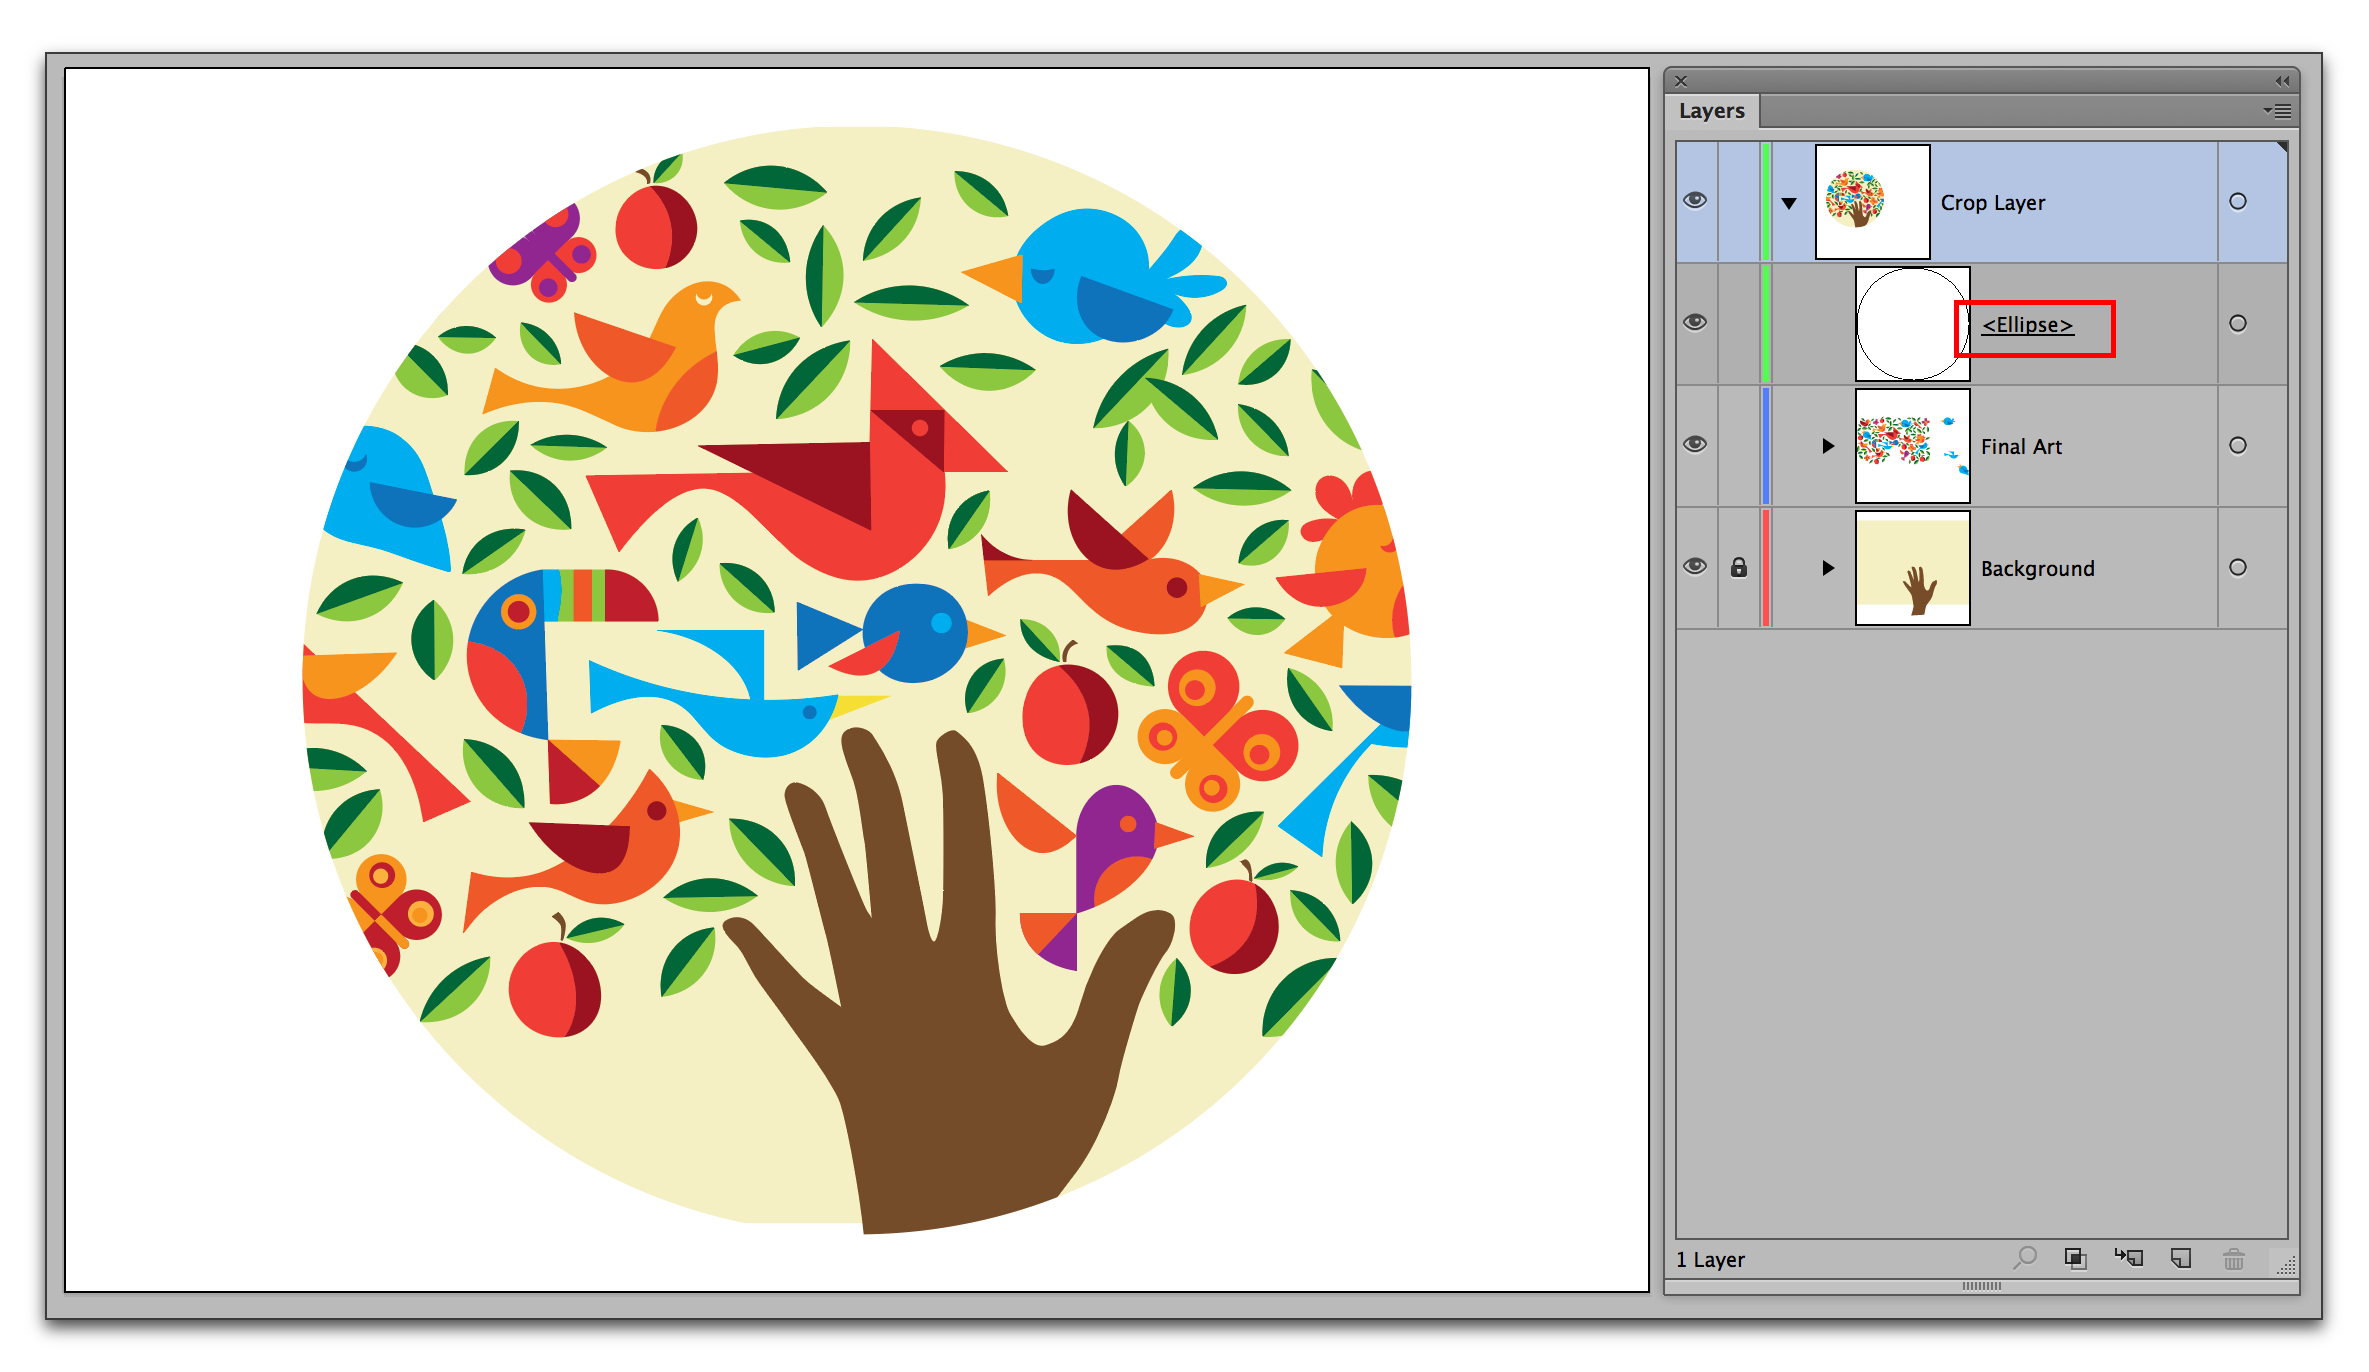 Adobe Illustrator CC 2015: Cropping in Illustrator